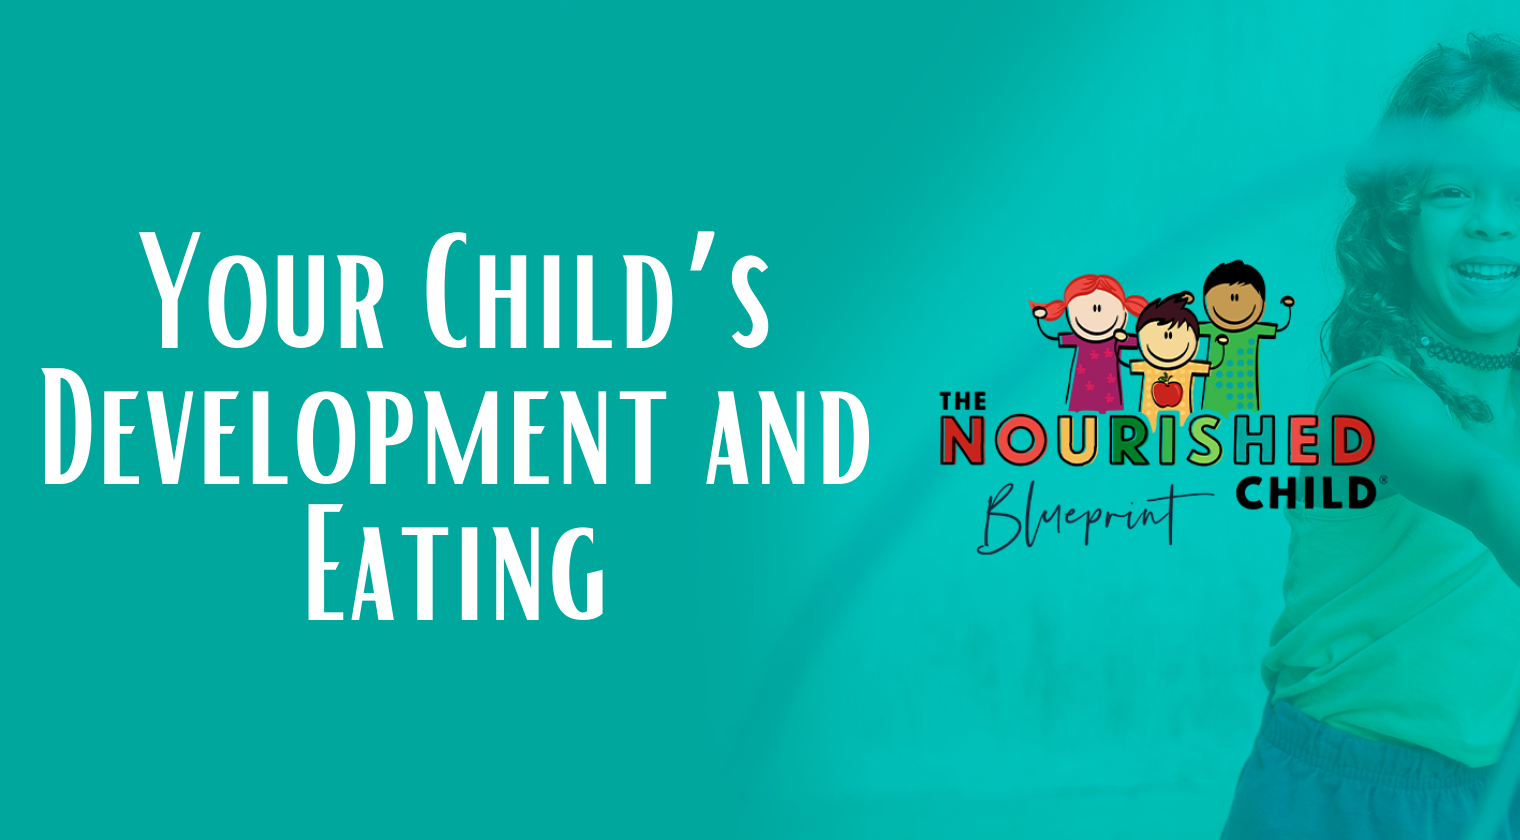 Your Child's Development and Eating - TNCB